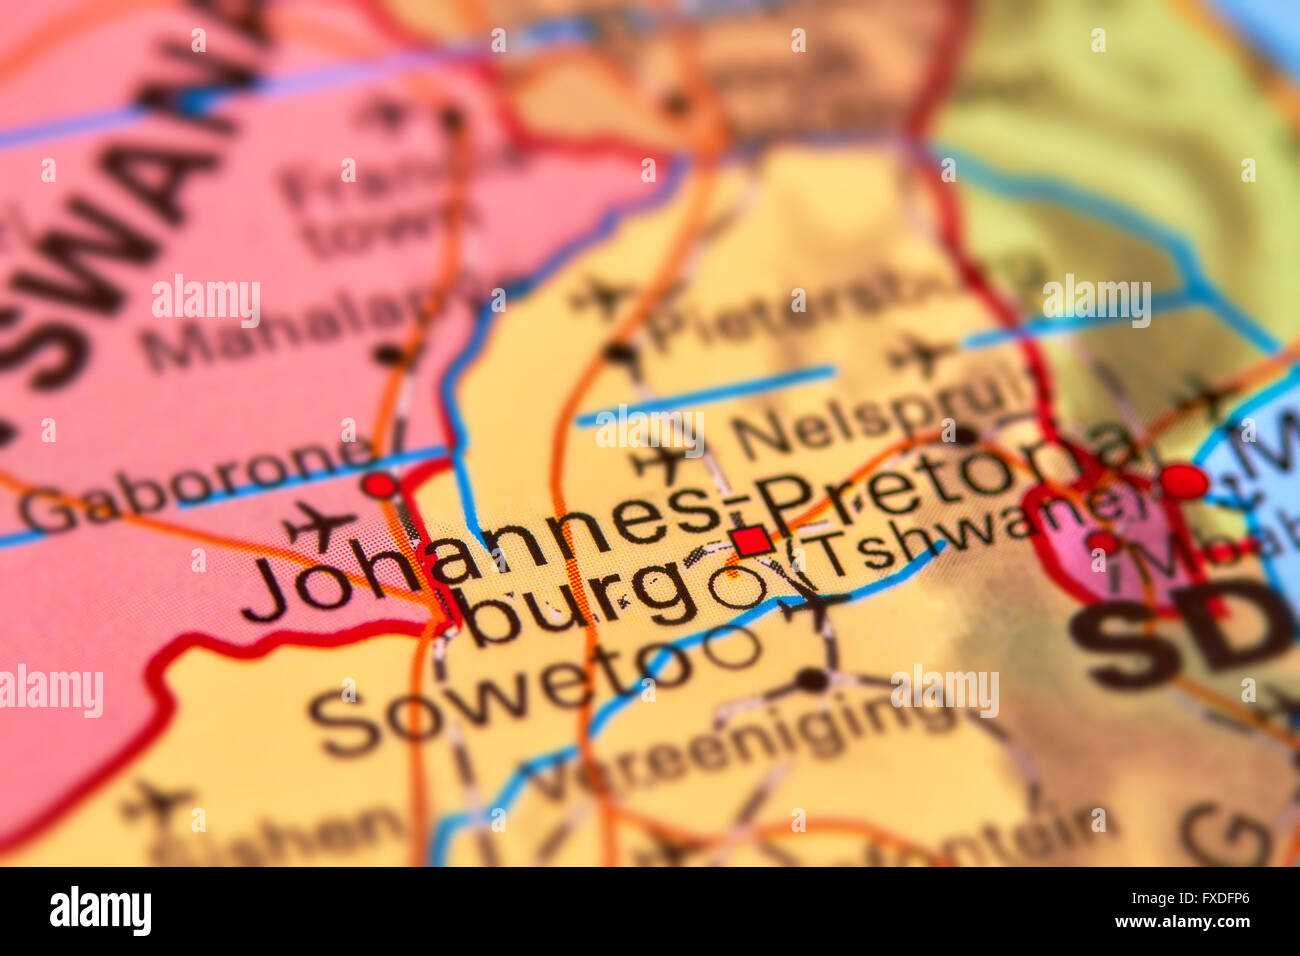 Johannesburg city in south africa on the world map stock photo johannesburg city in south africa on the world map gumiabroncs Choice Image